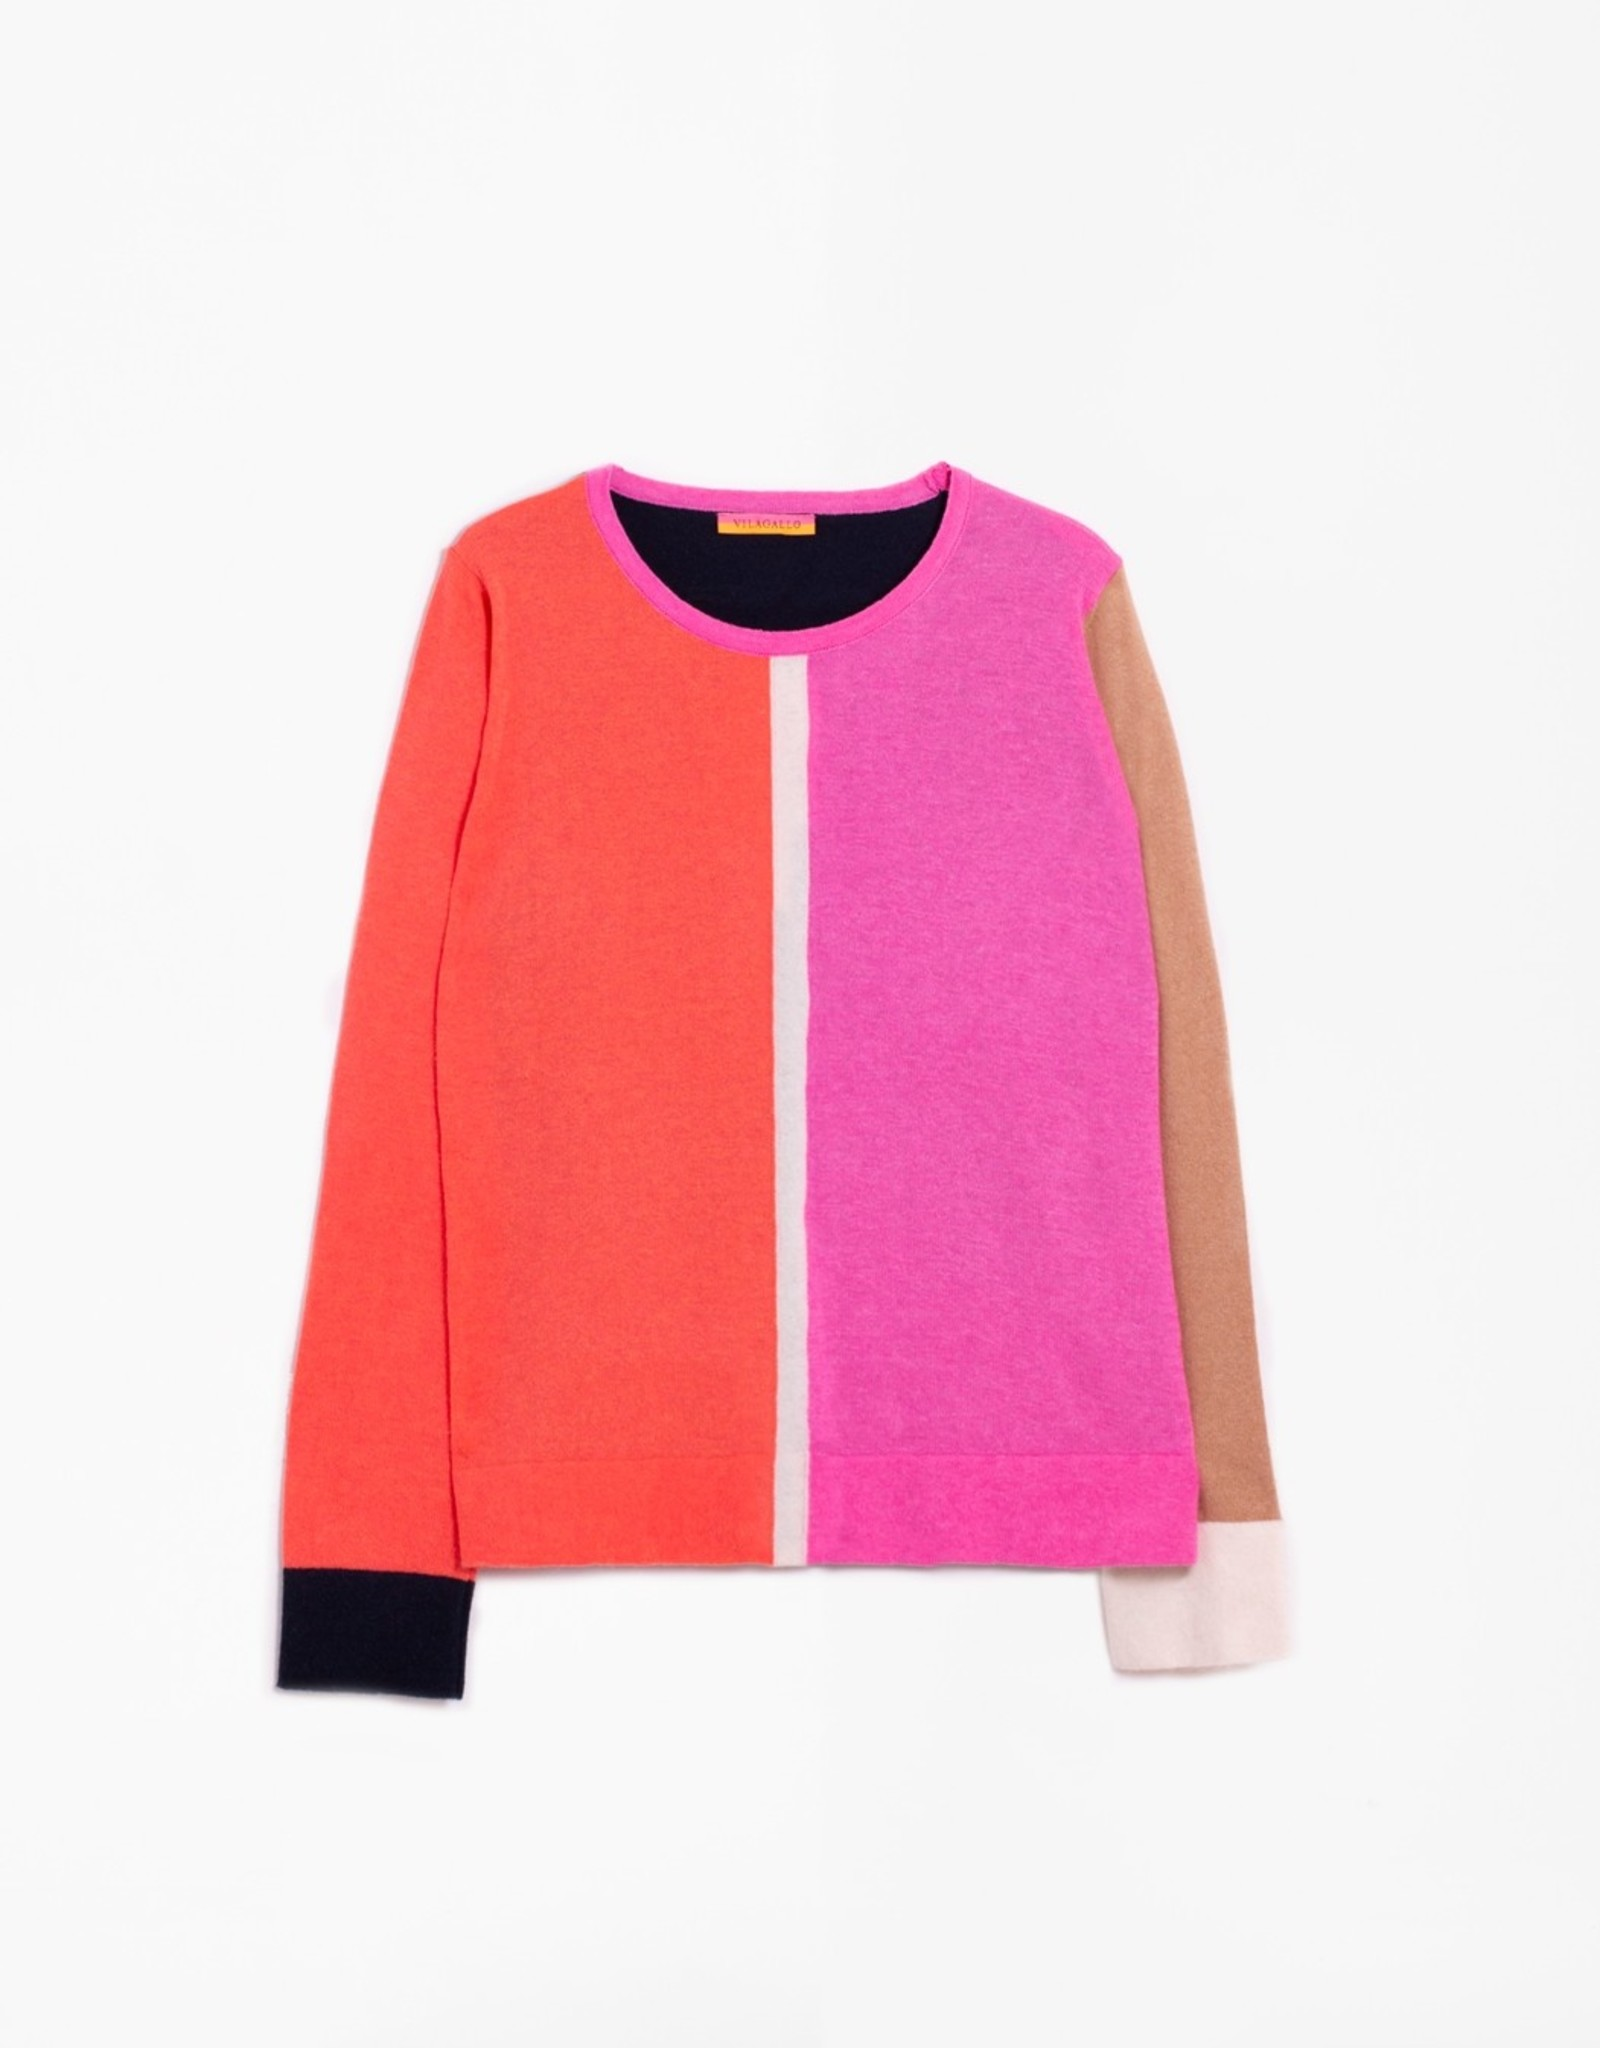 VilaGallo VilaGallo Sybelle Colorblock Knit Sweater